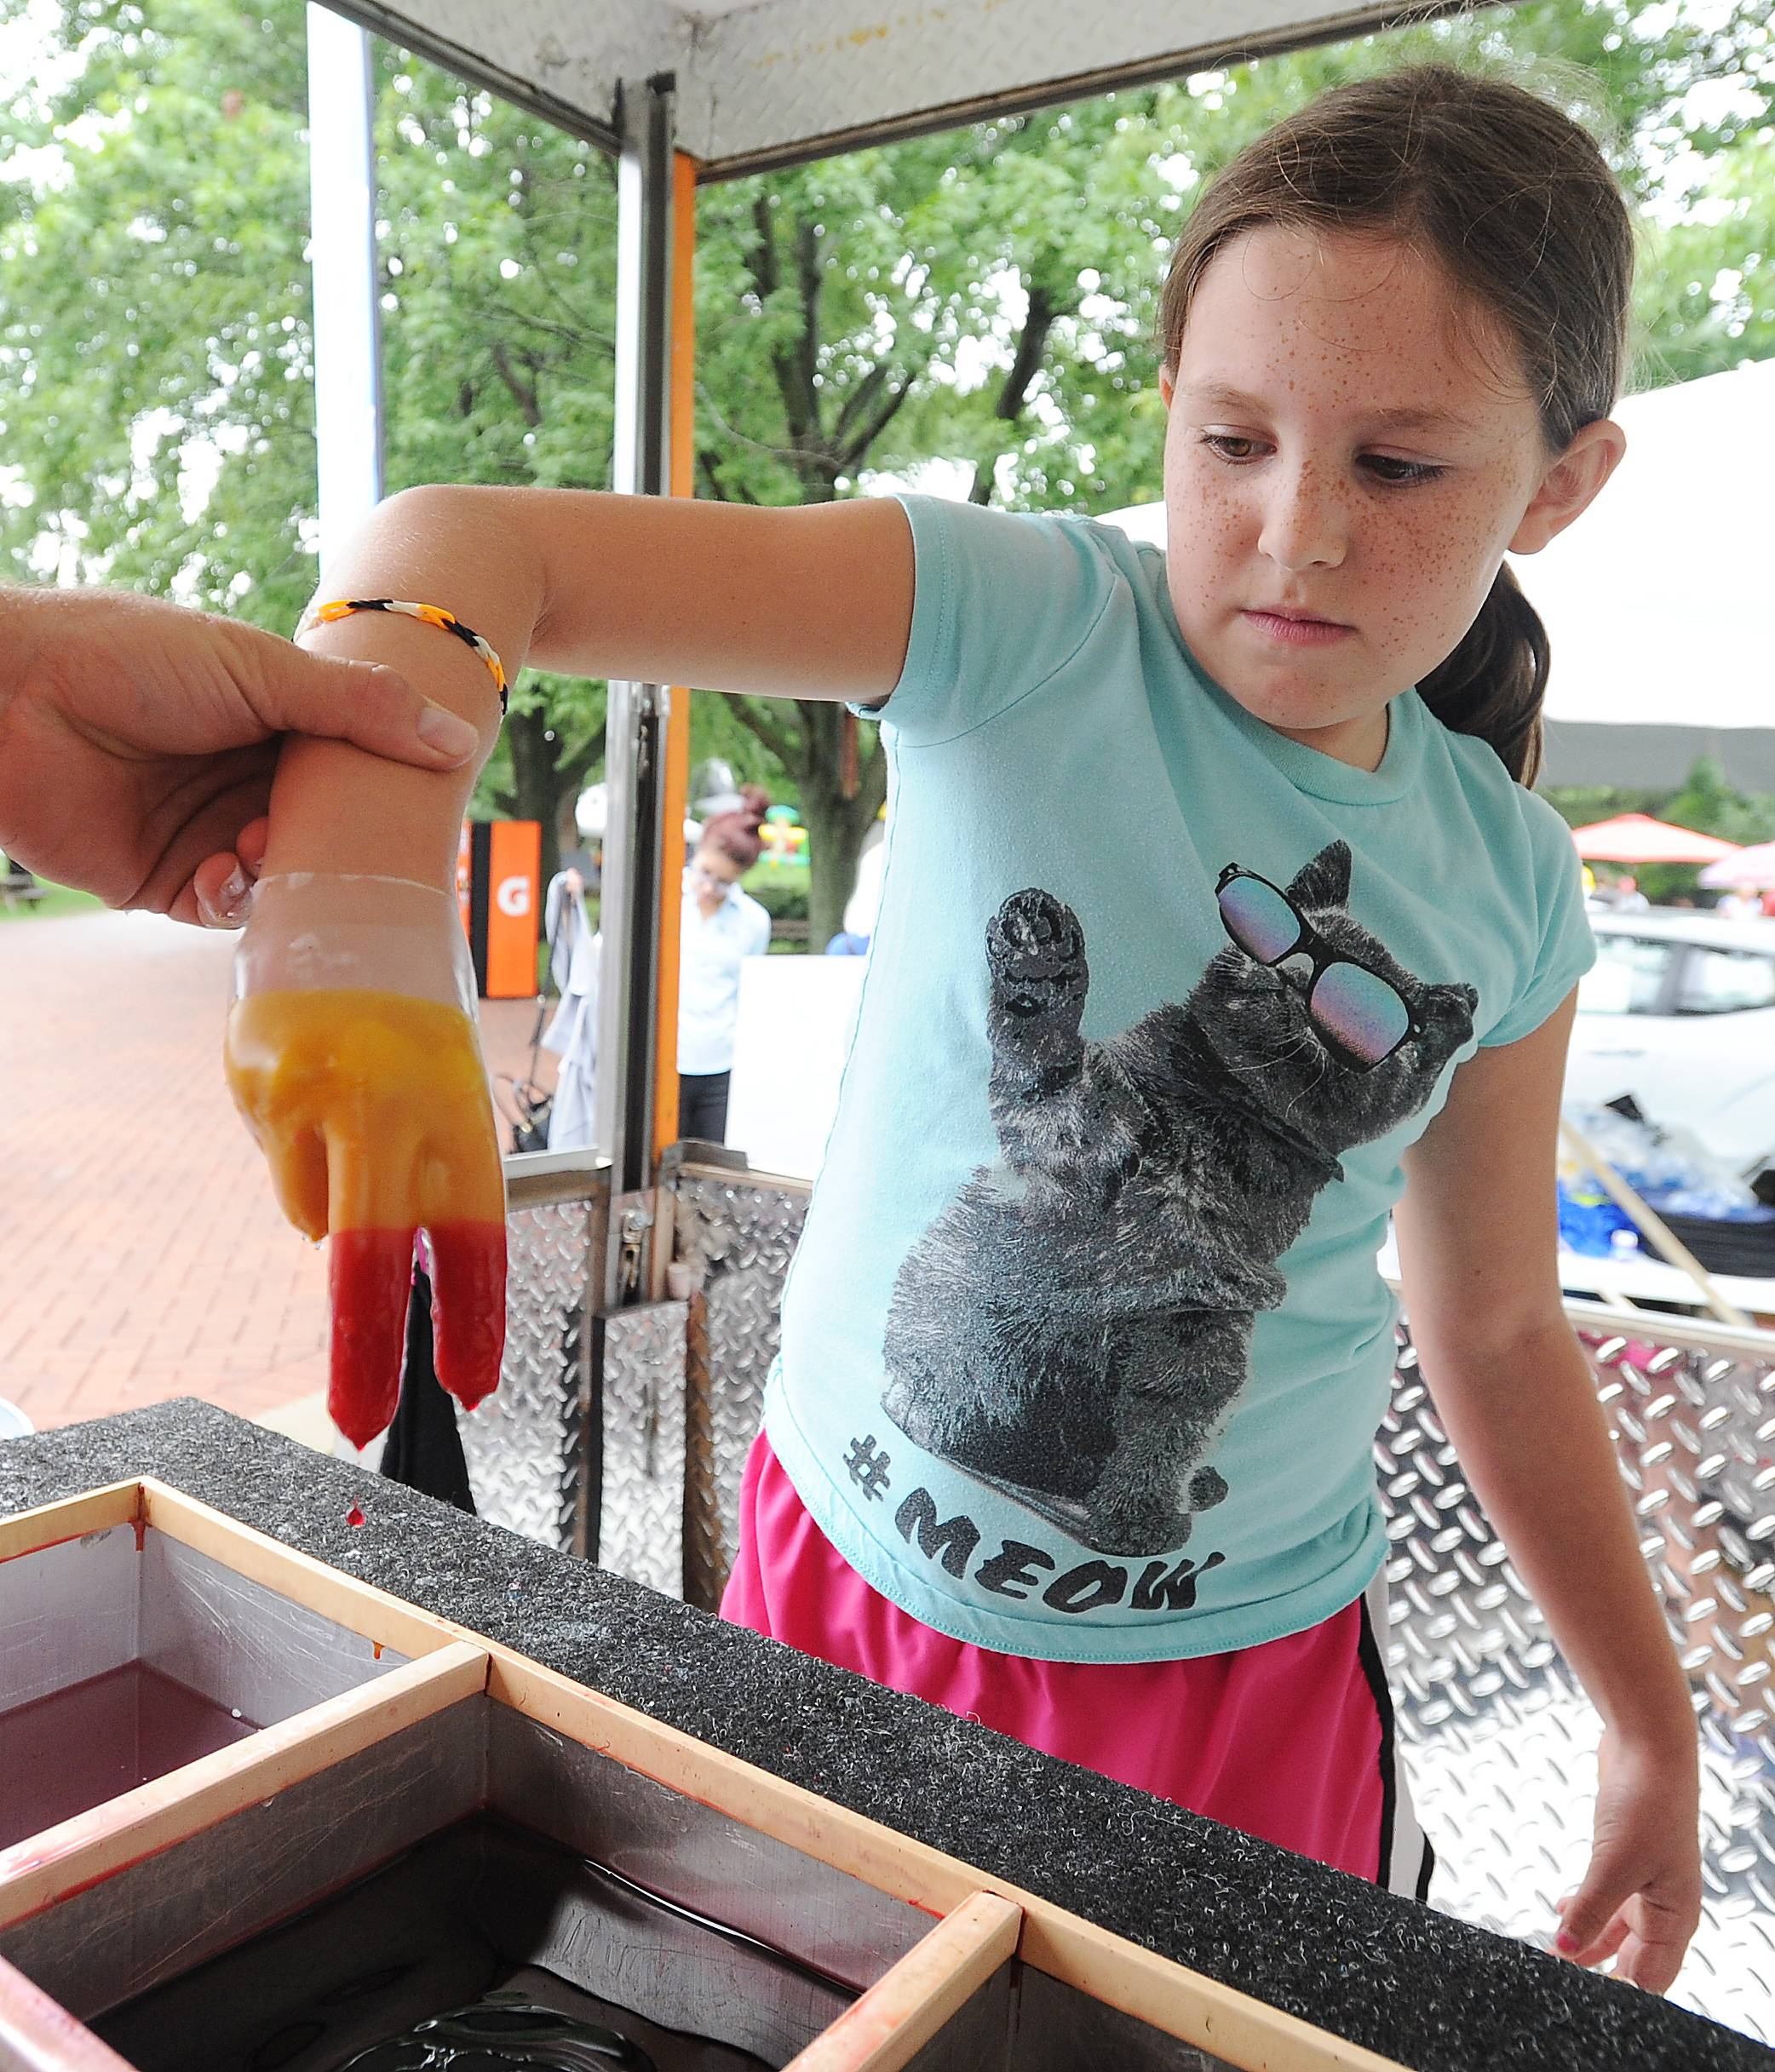 A large family fun area with kids activities is a hallmark of the Last Fling festival in Naperville, which is preparing for its 54th running Aug. 30 to Sept. 2. Organizers say they want to keep the event true to its roots and affordable for families.